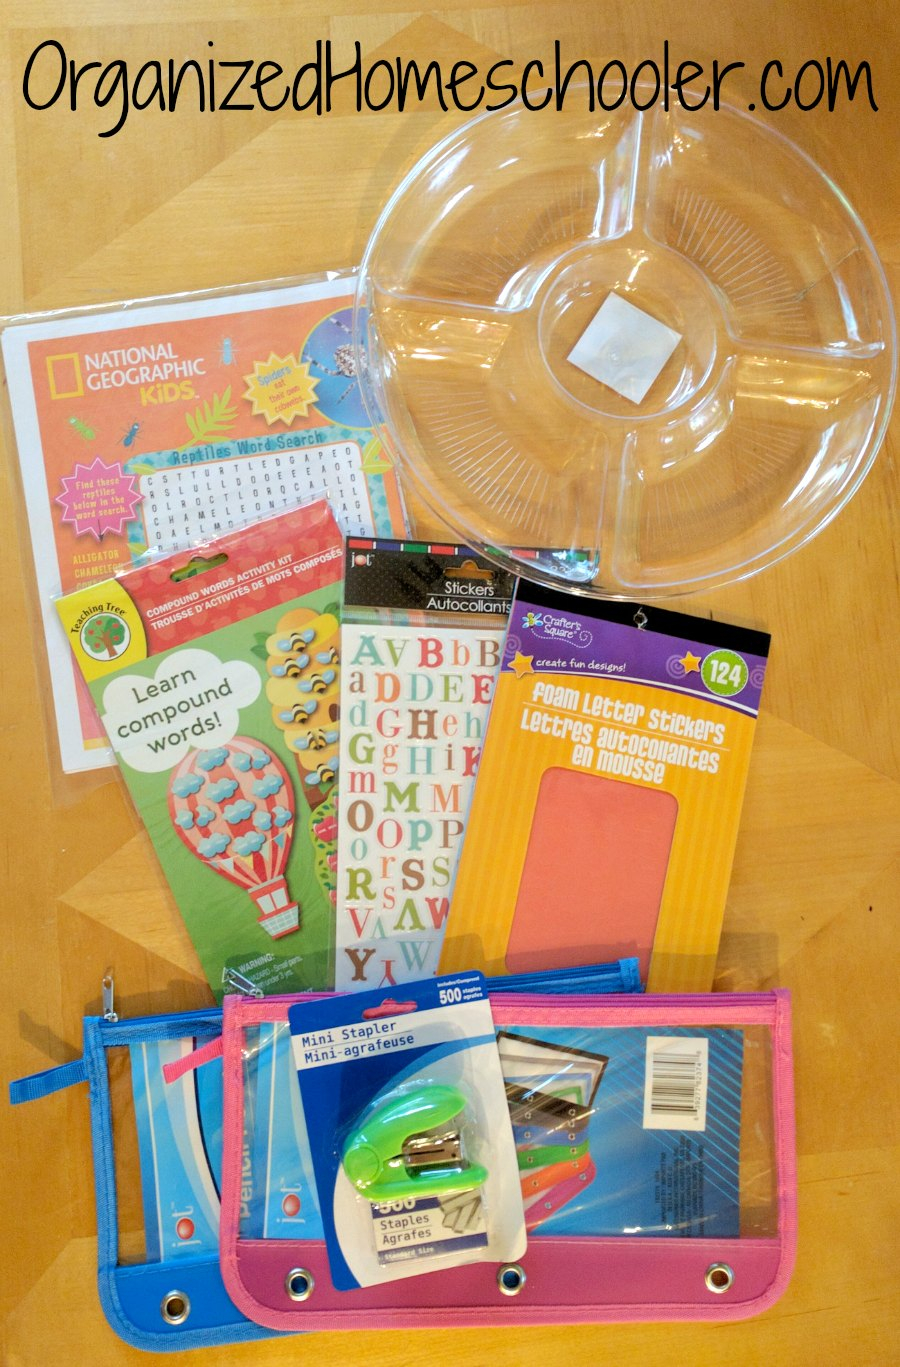 Dollar Tree Homeschool Deals ~ The Organized Homeschooler